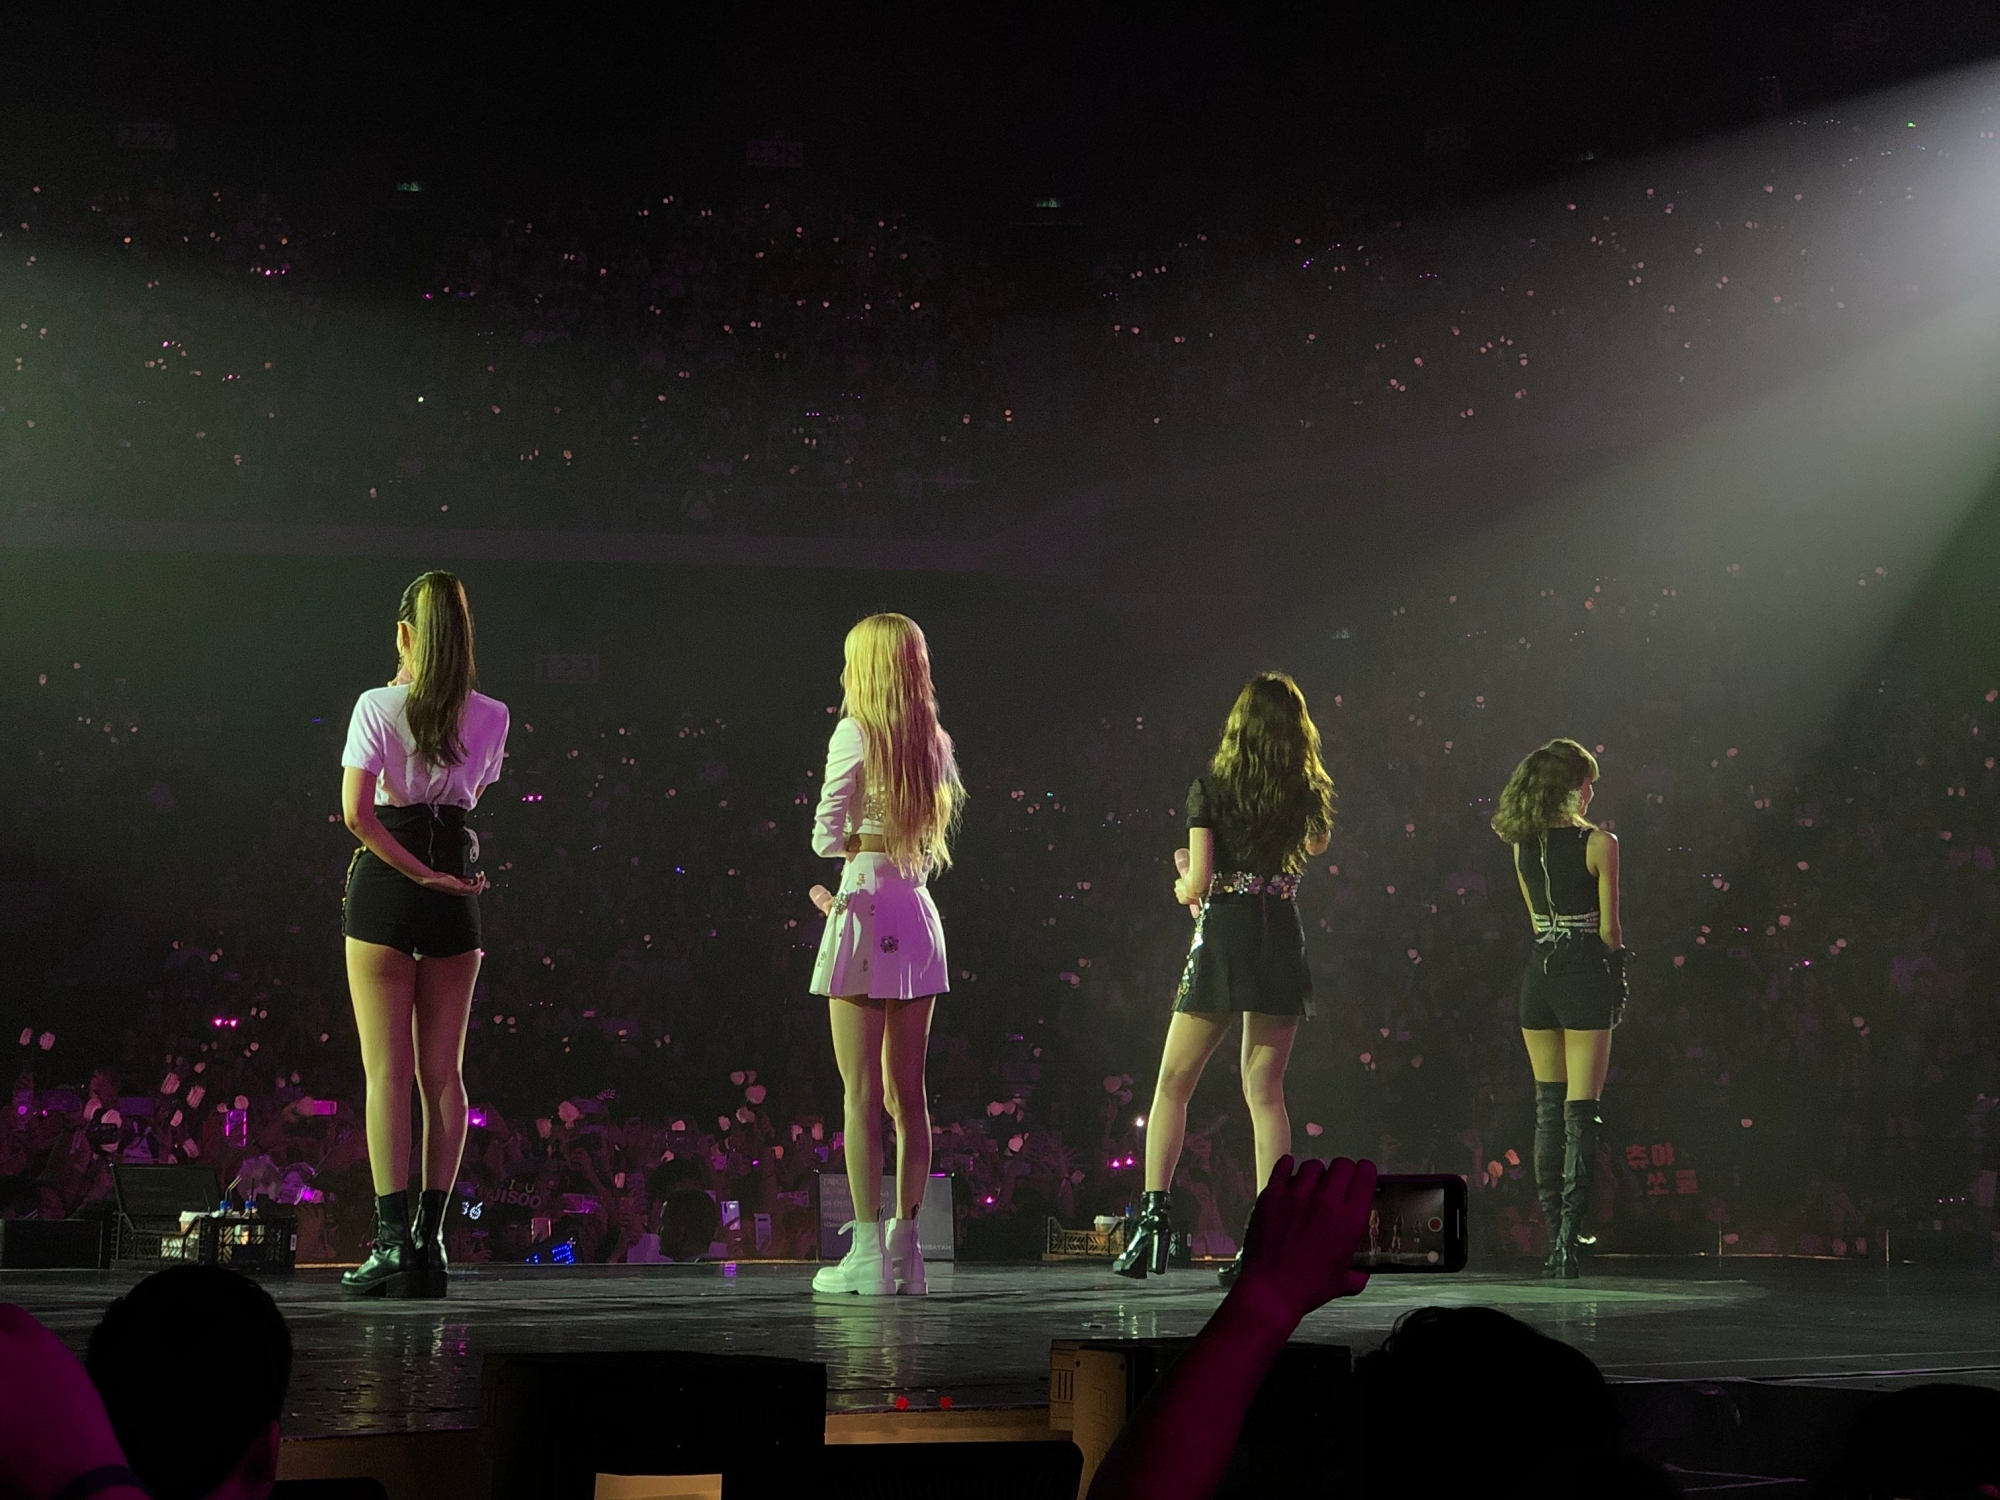 the-nat-channel-concert-blackpink-in-your-area-macau-venetian-2019